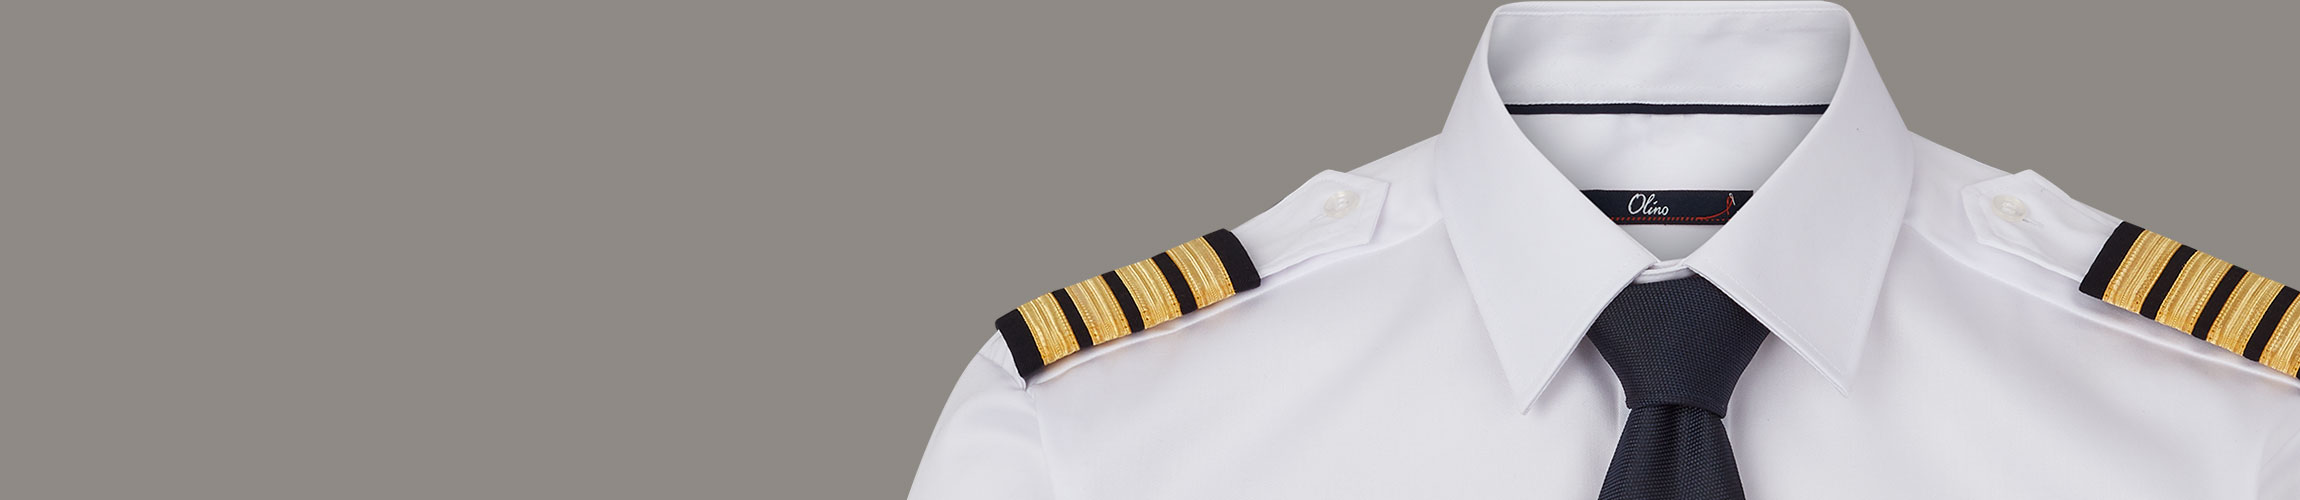 Custom uniform shirts for airlines